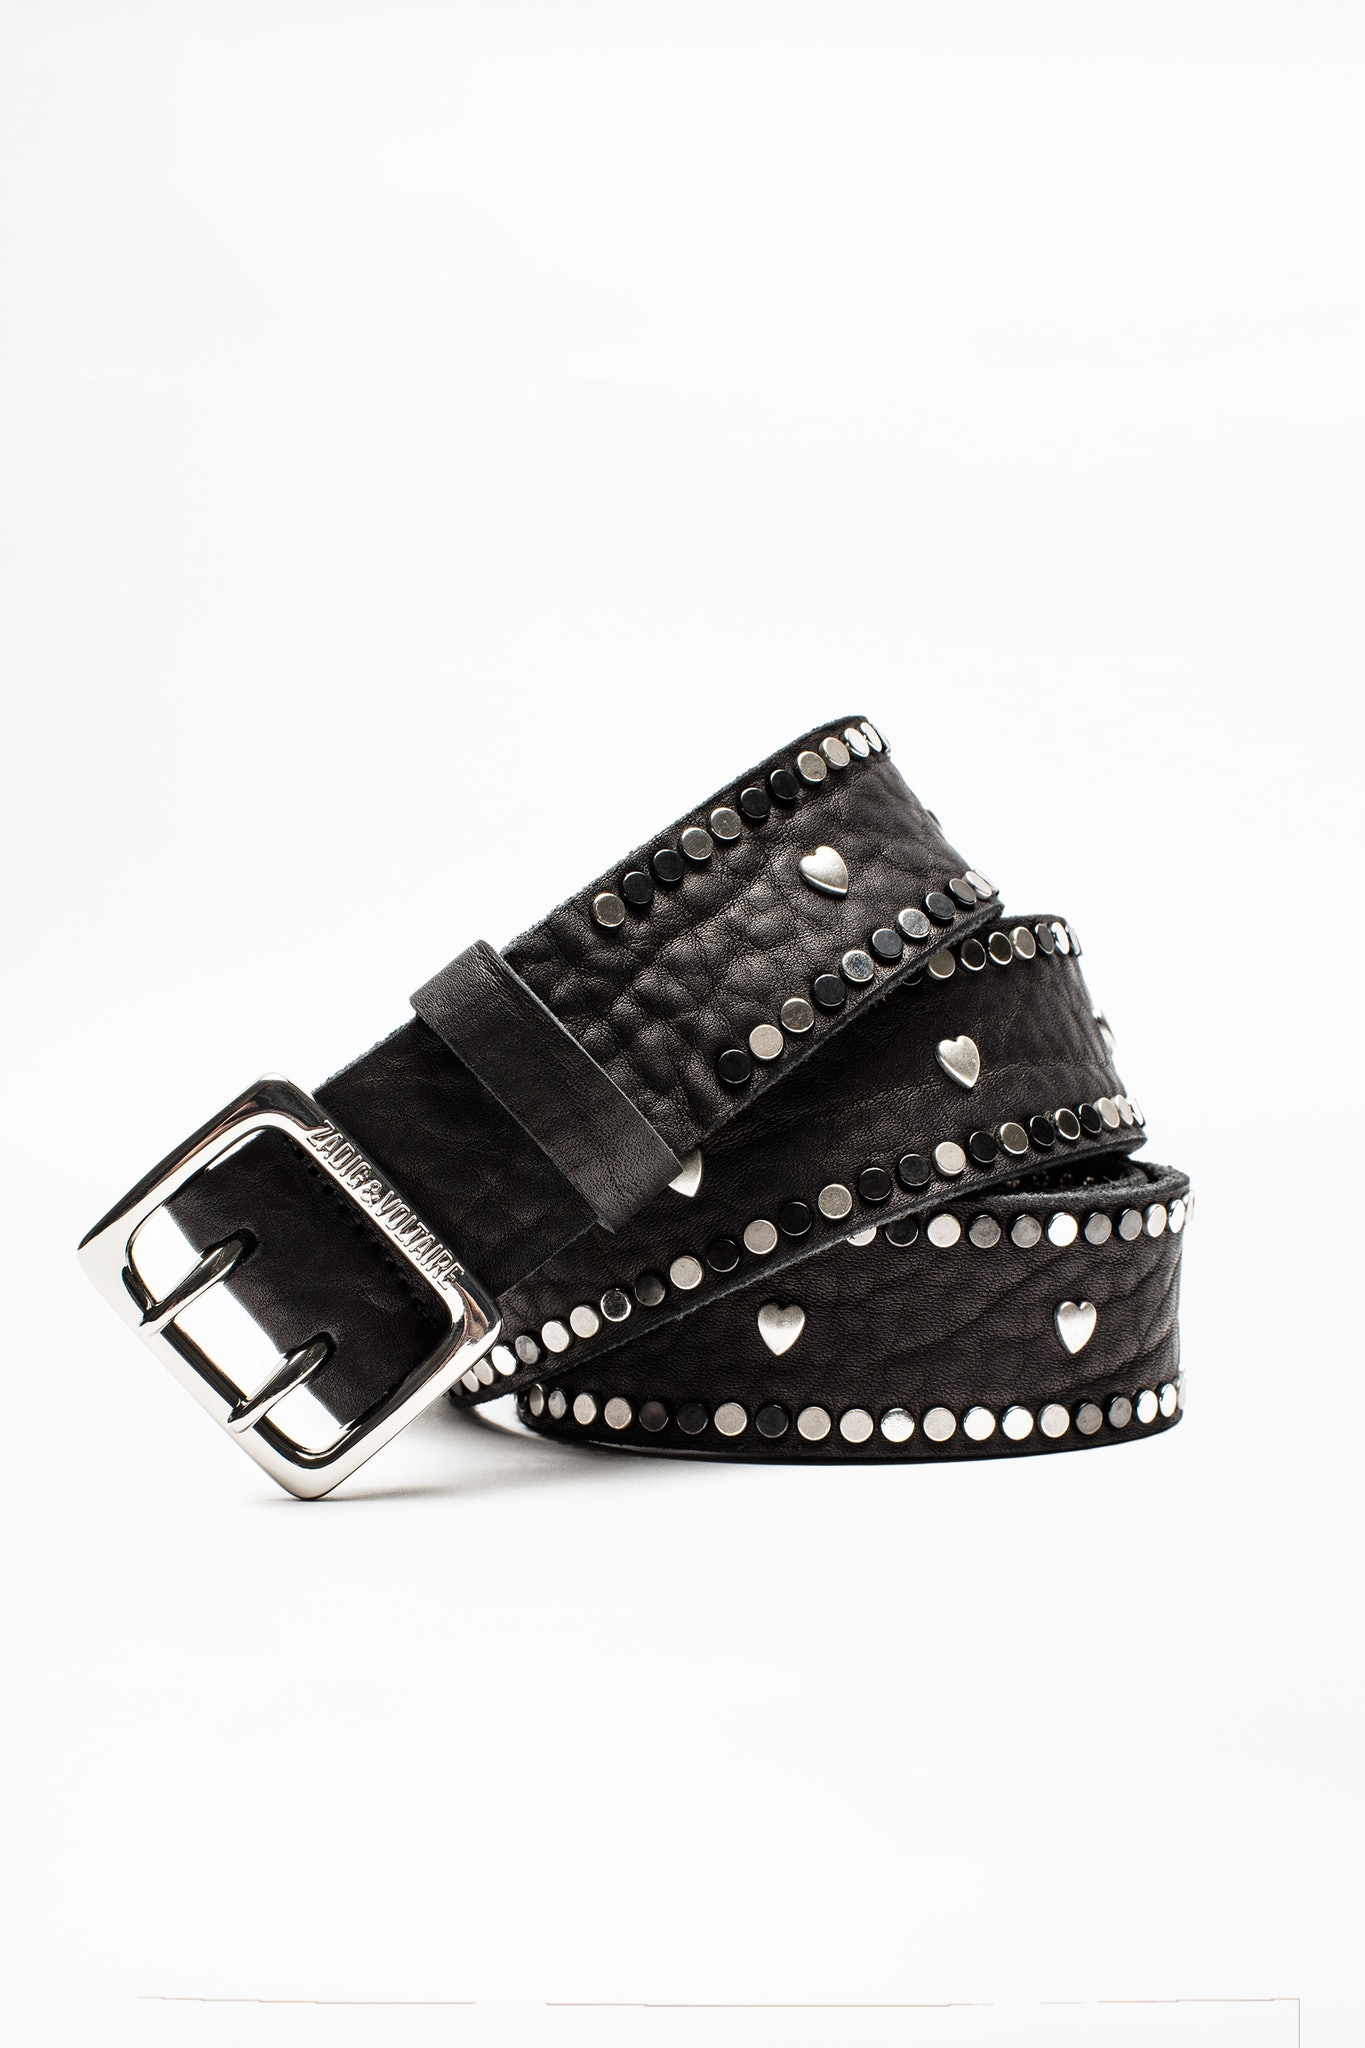 Starlight Coeur Belt